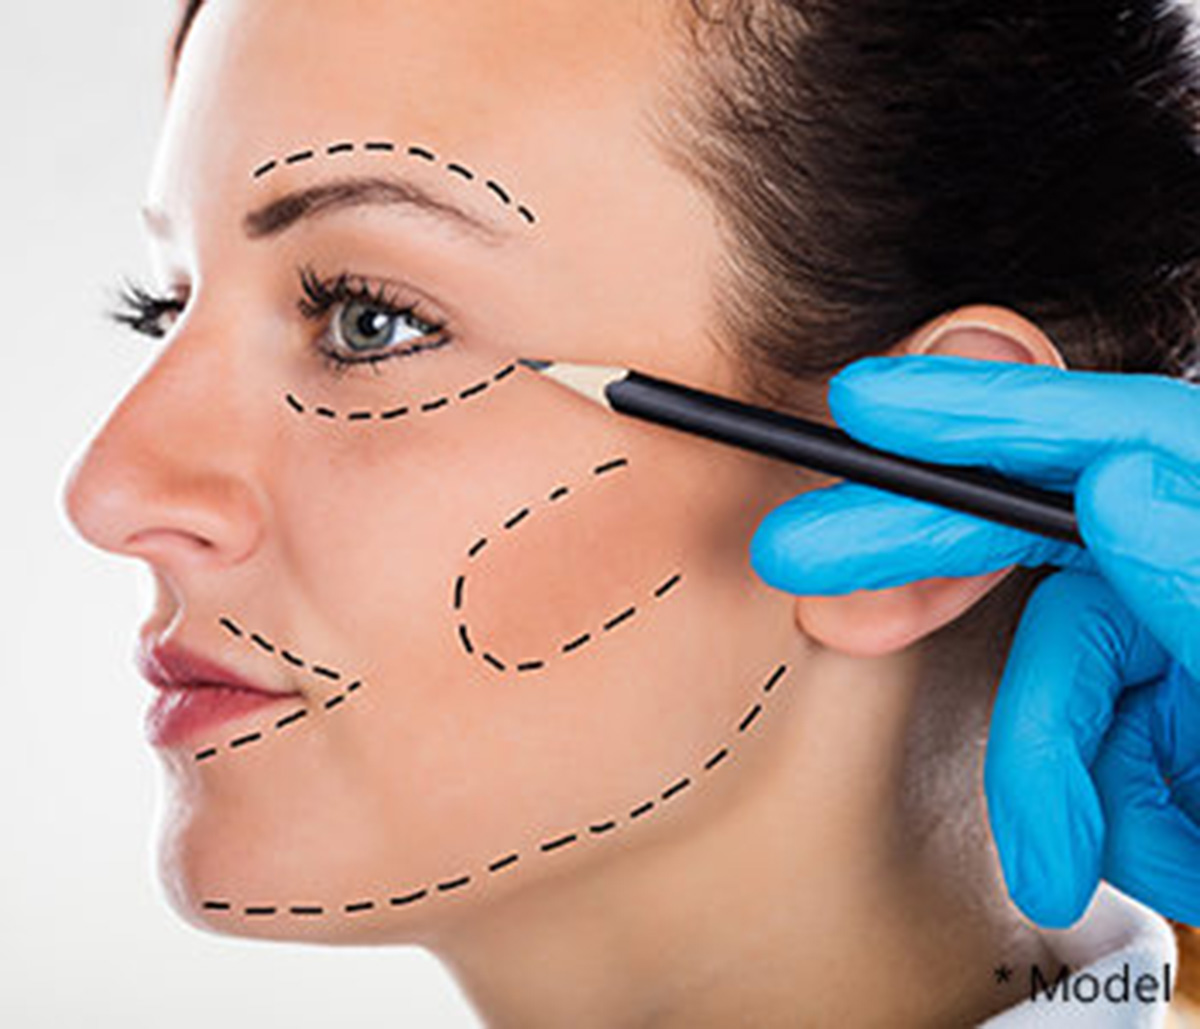 Dr. Dass describes facelift without surgery